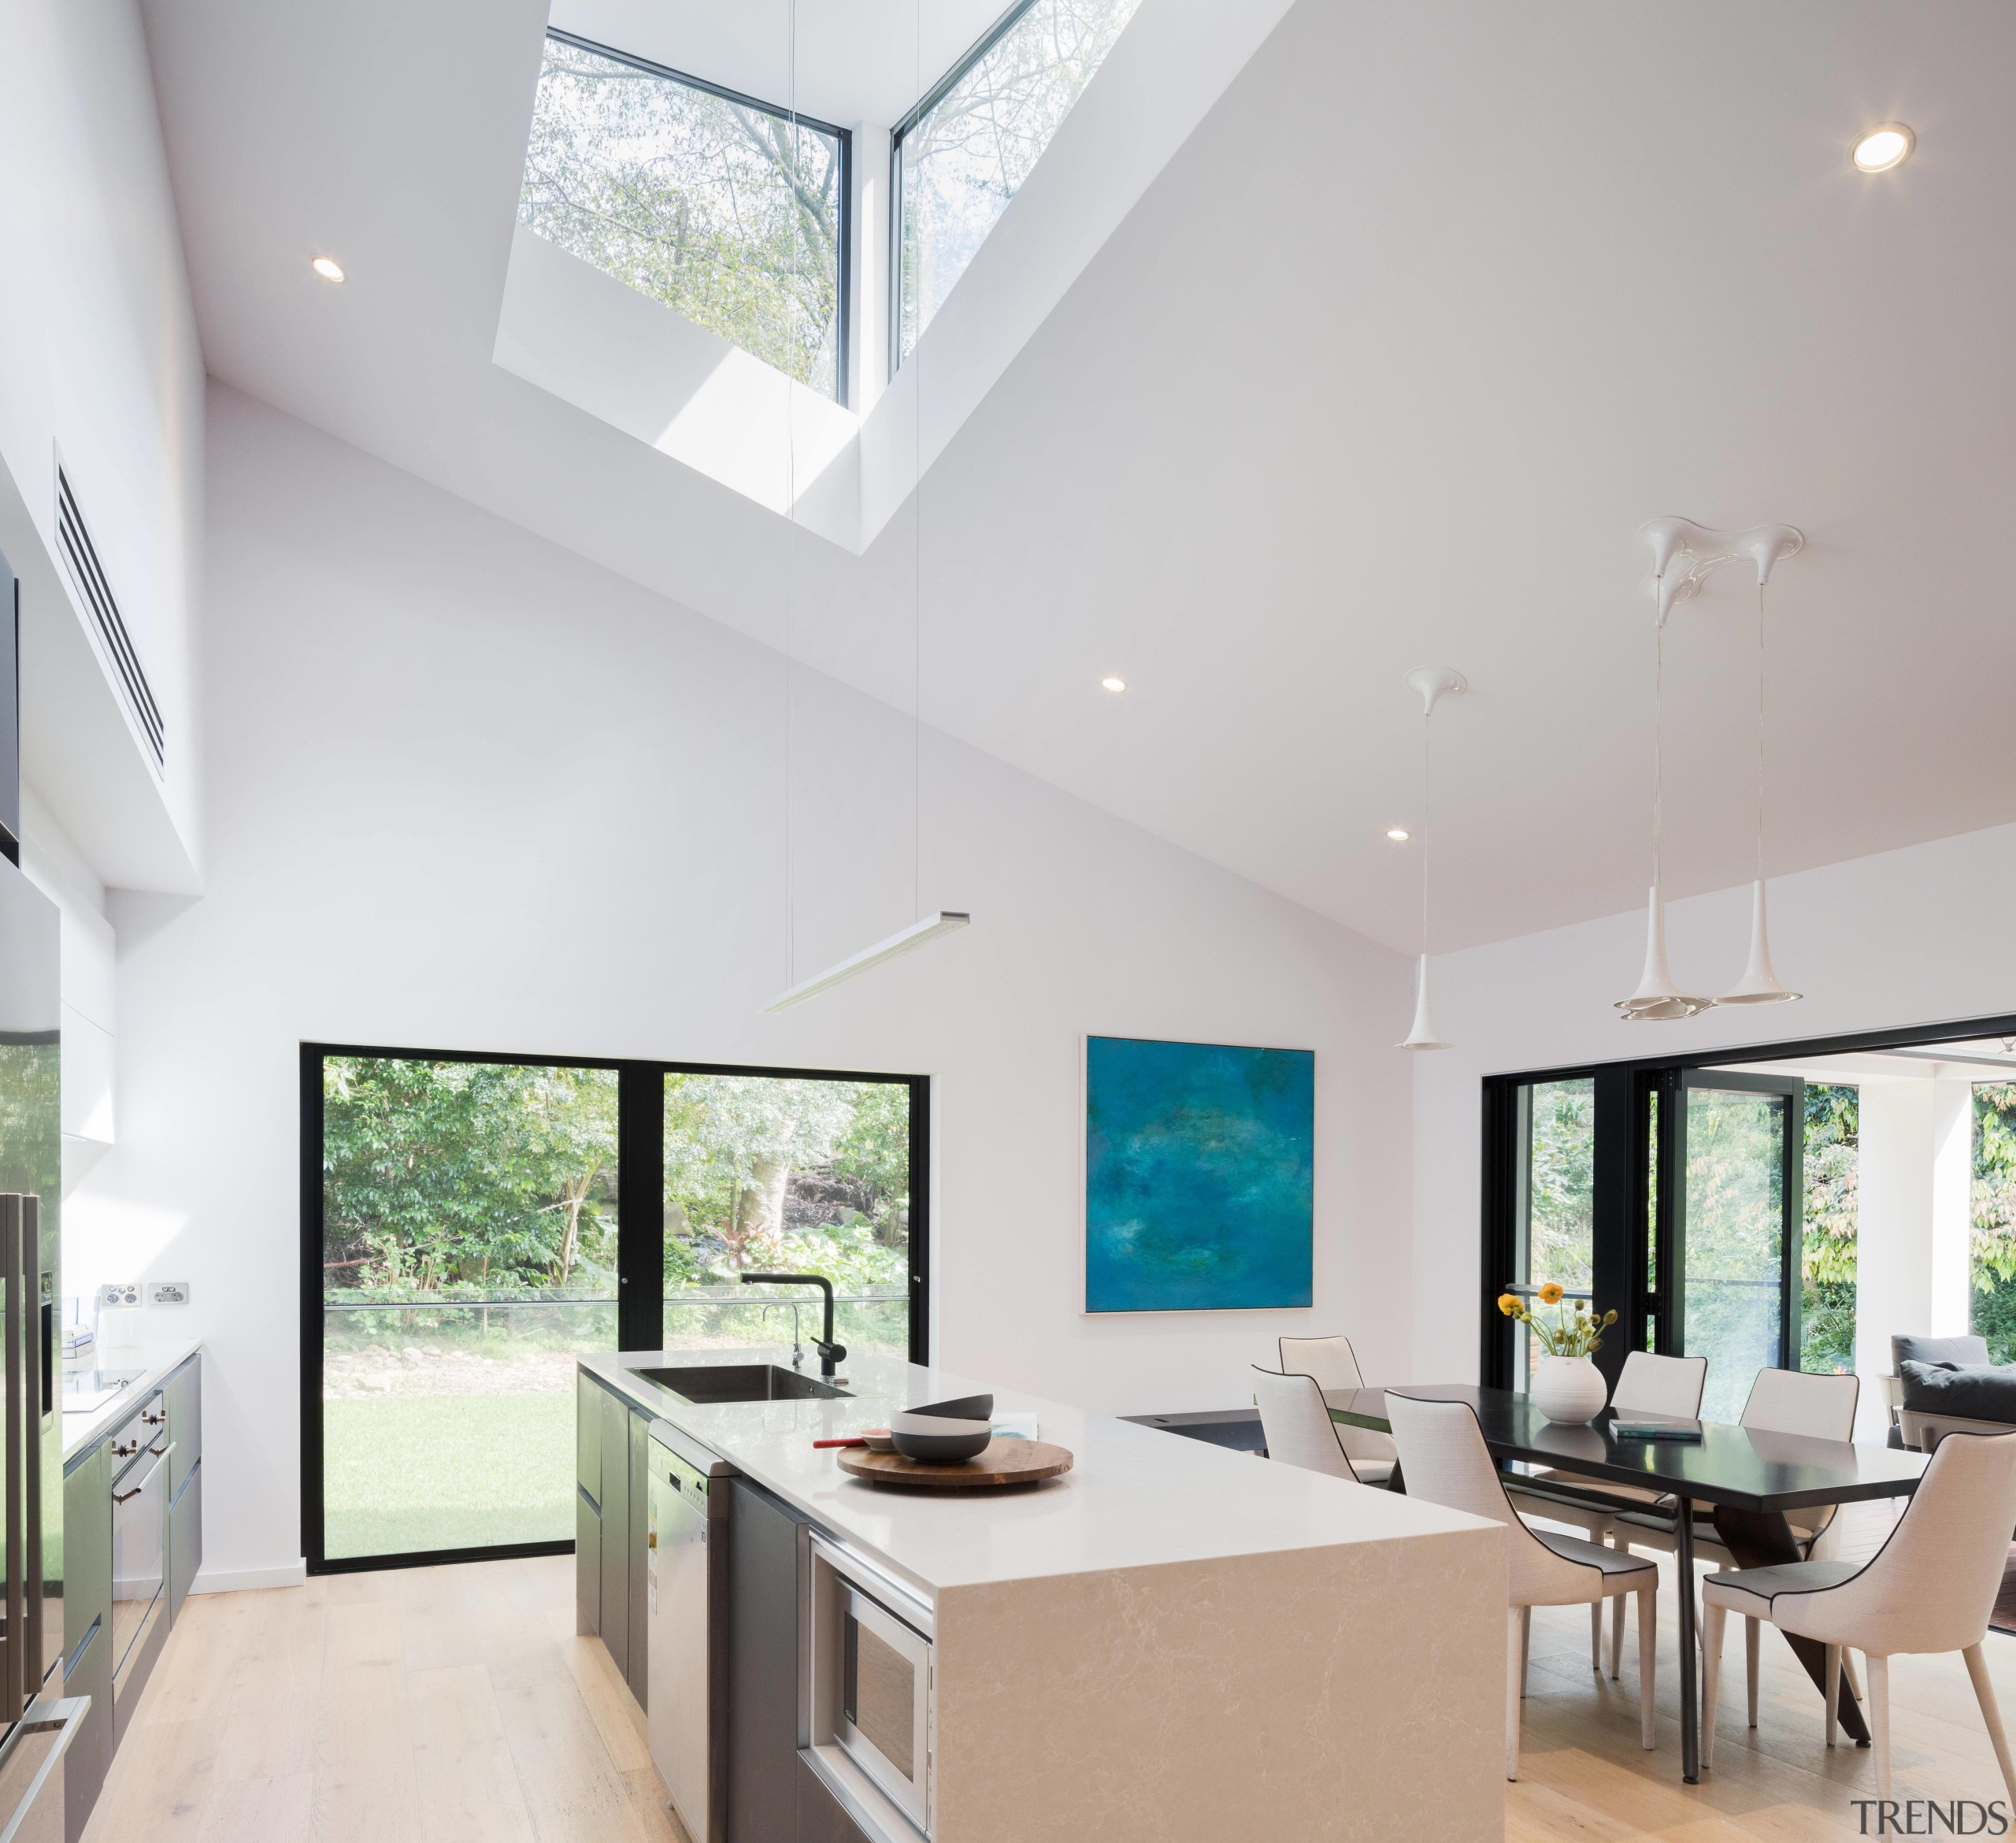 Tall order  this new kitchen, part of architecture, ceiling, daylighting, estate, house, interior design, interior designer, living room, property, real estate, window, gray, white